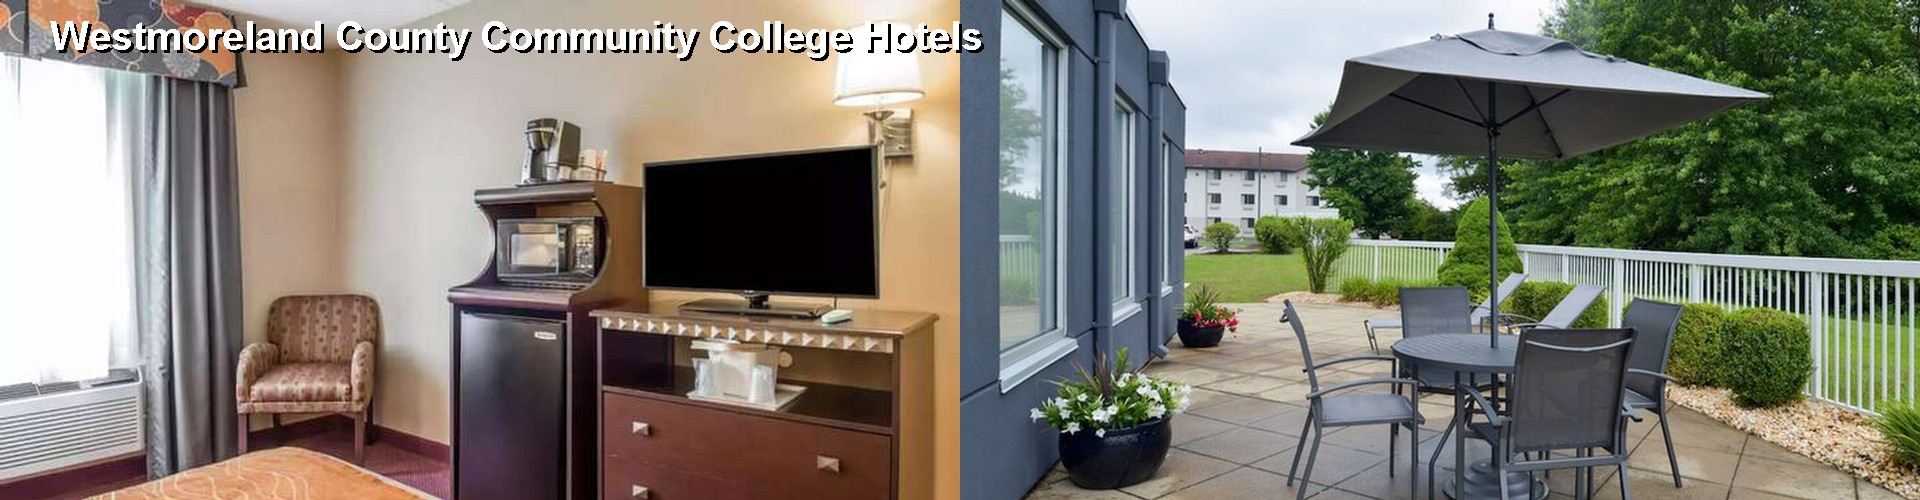 5 Best Hotels near Westmoreland County Community College